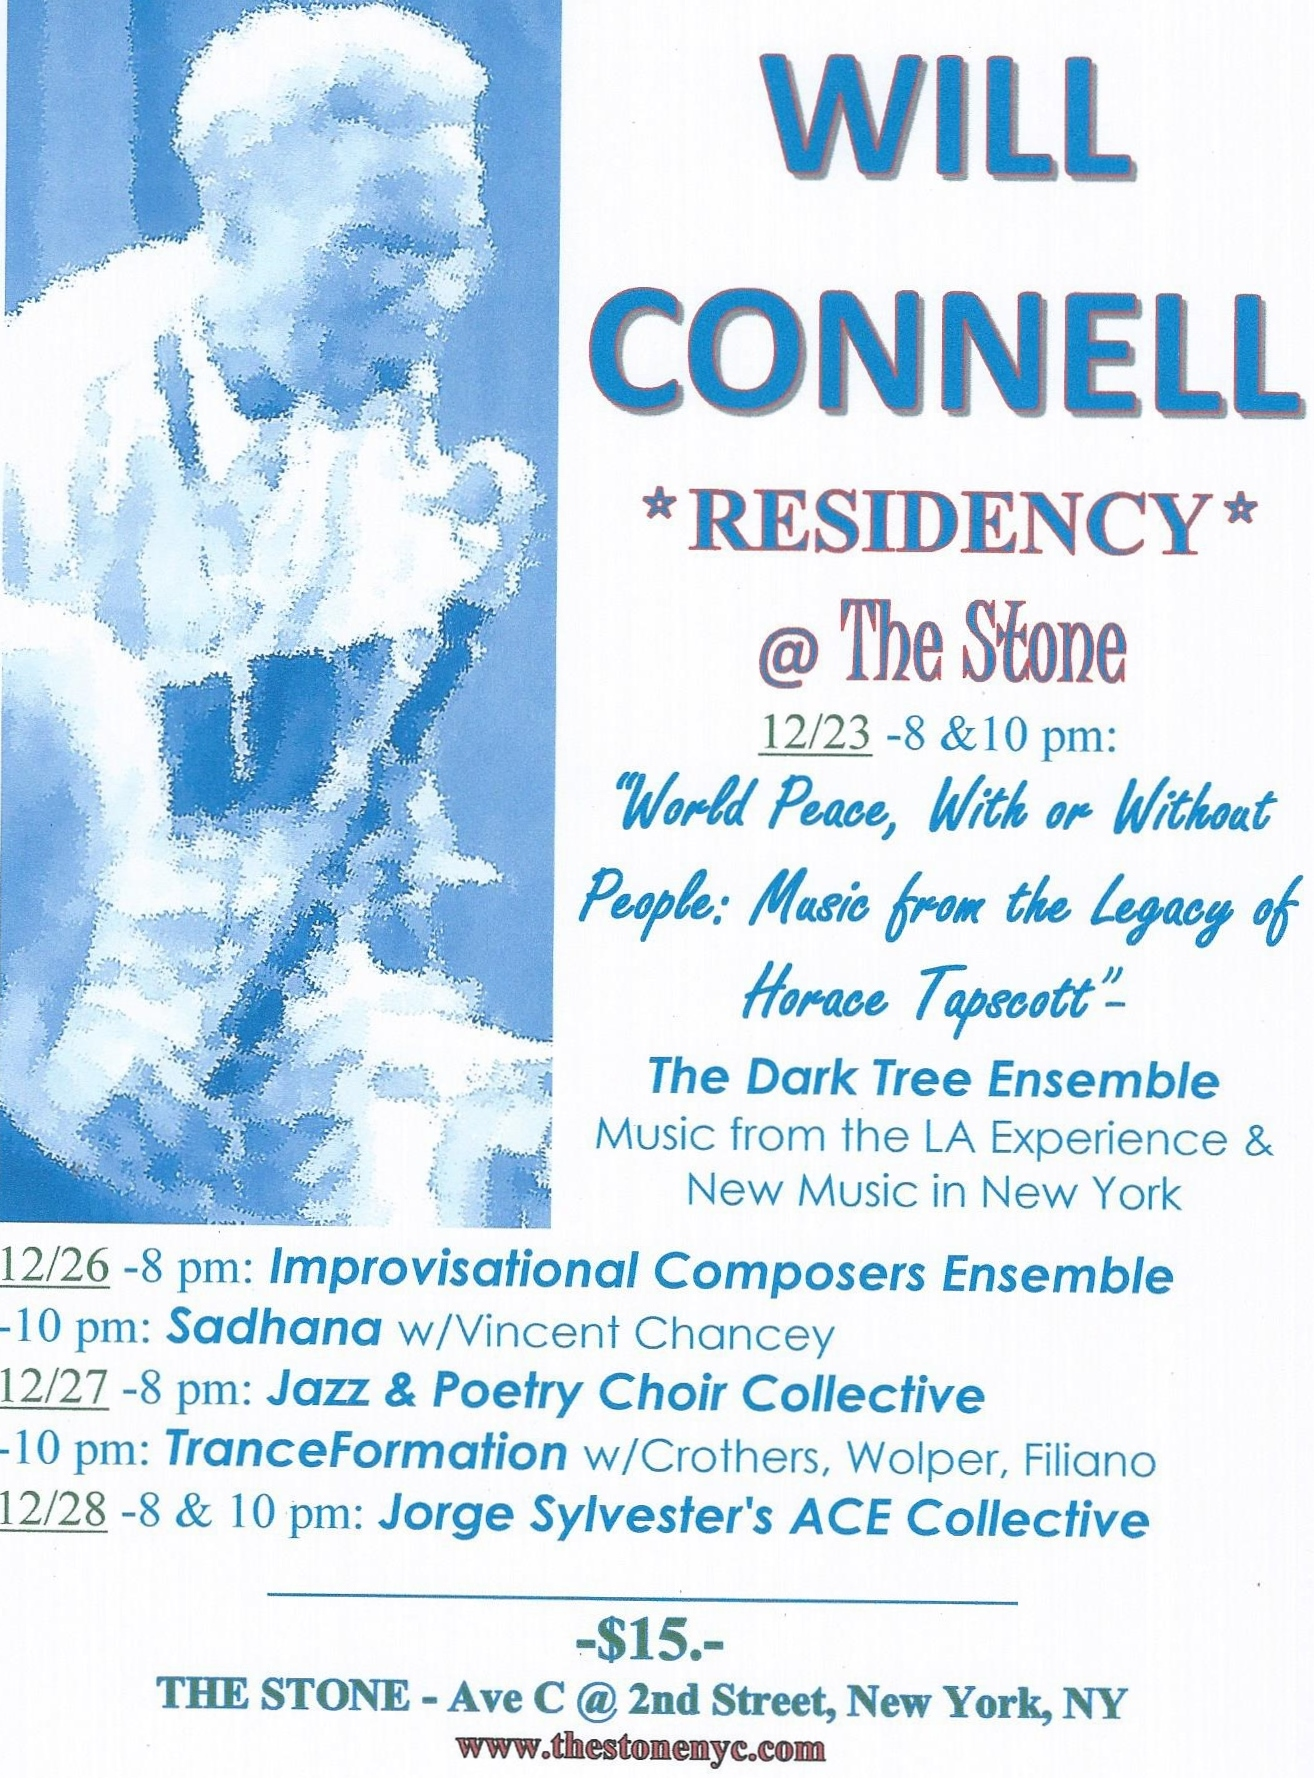 Will Connell Residency @ the Stone